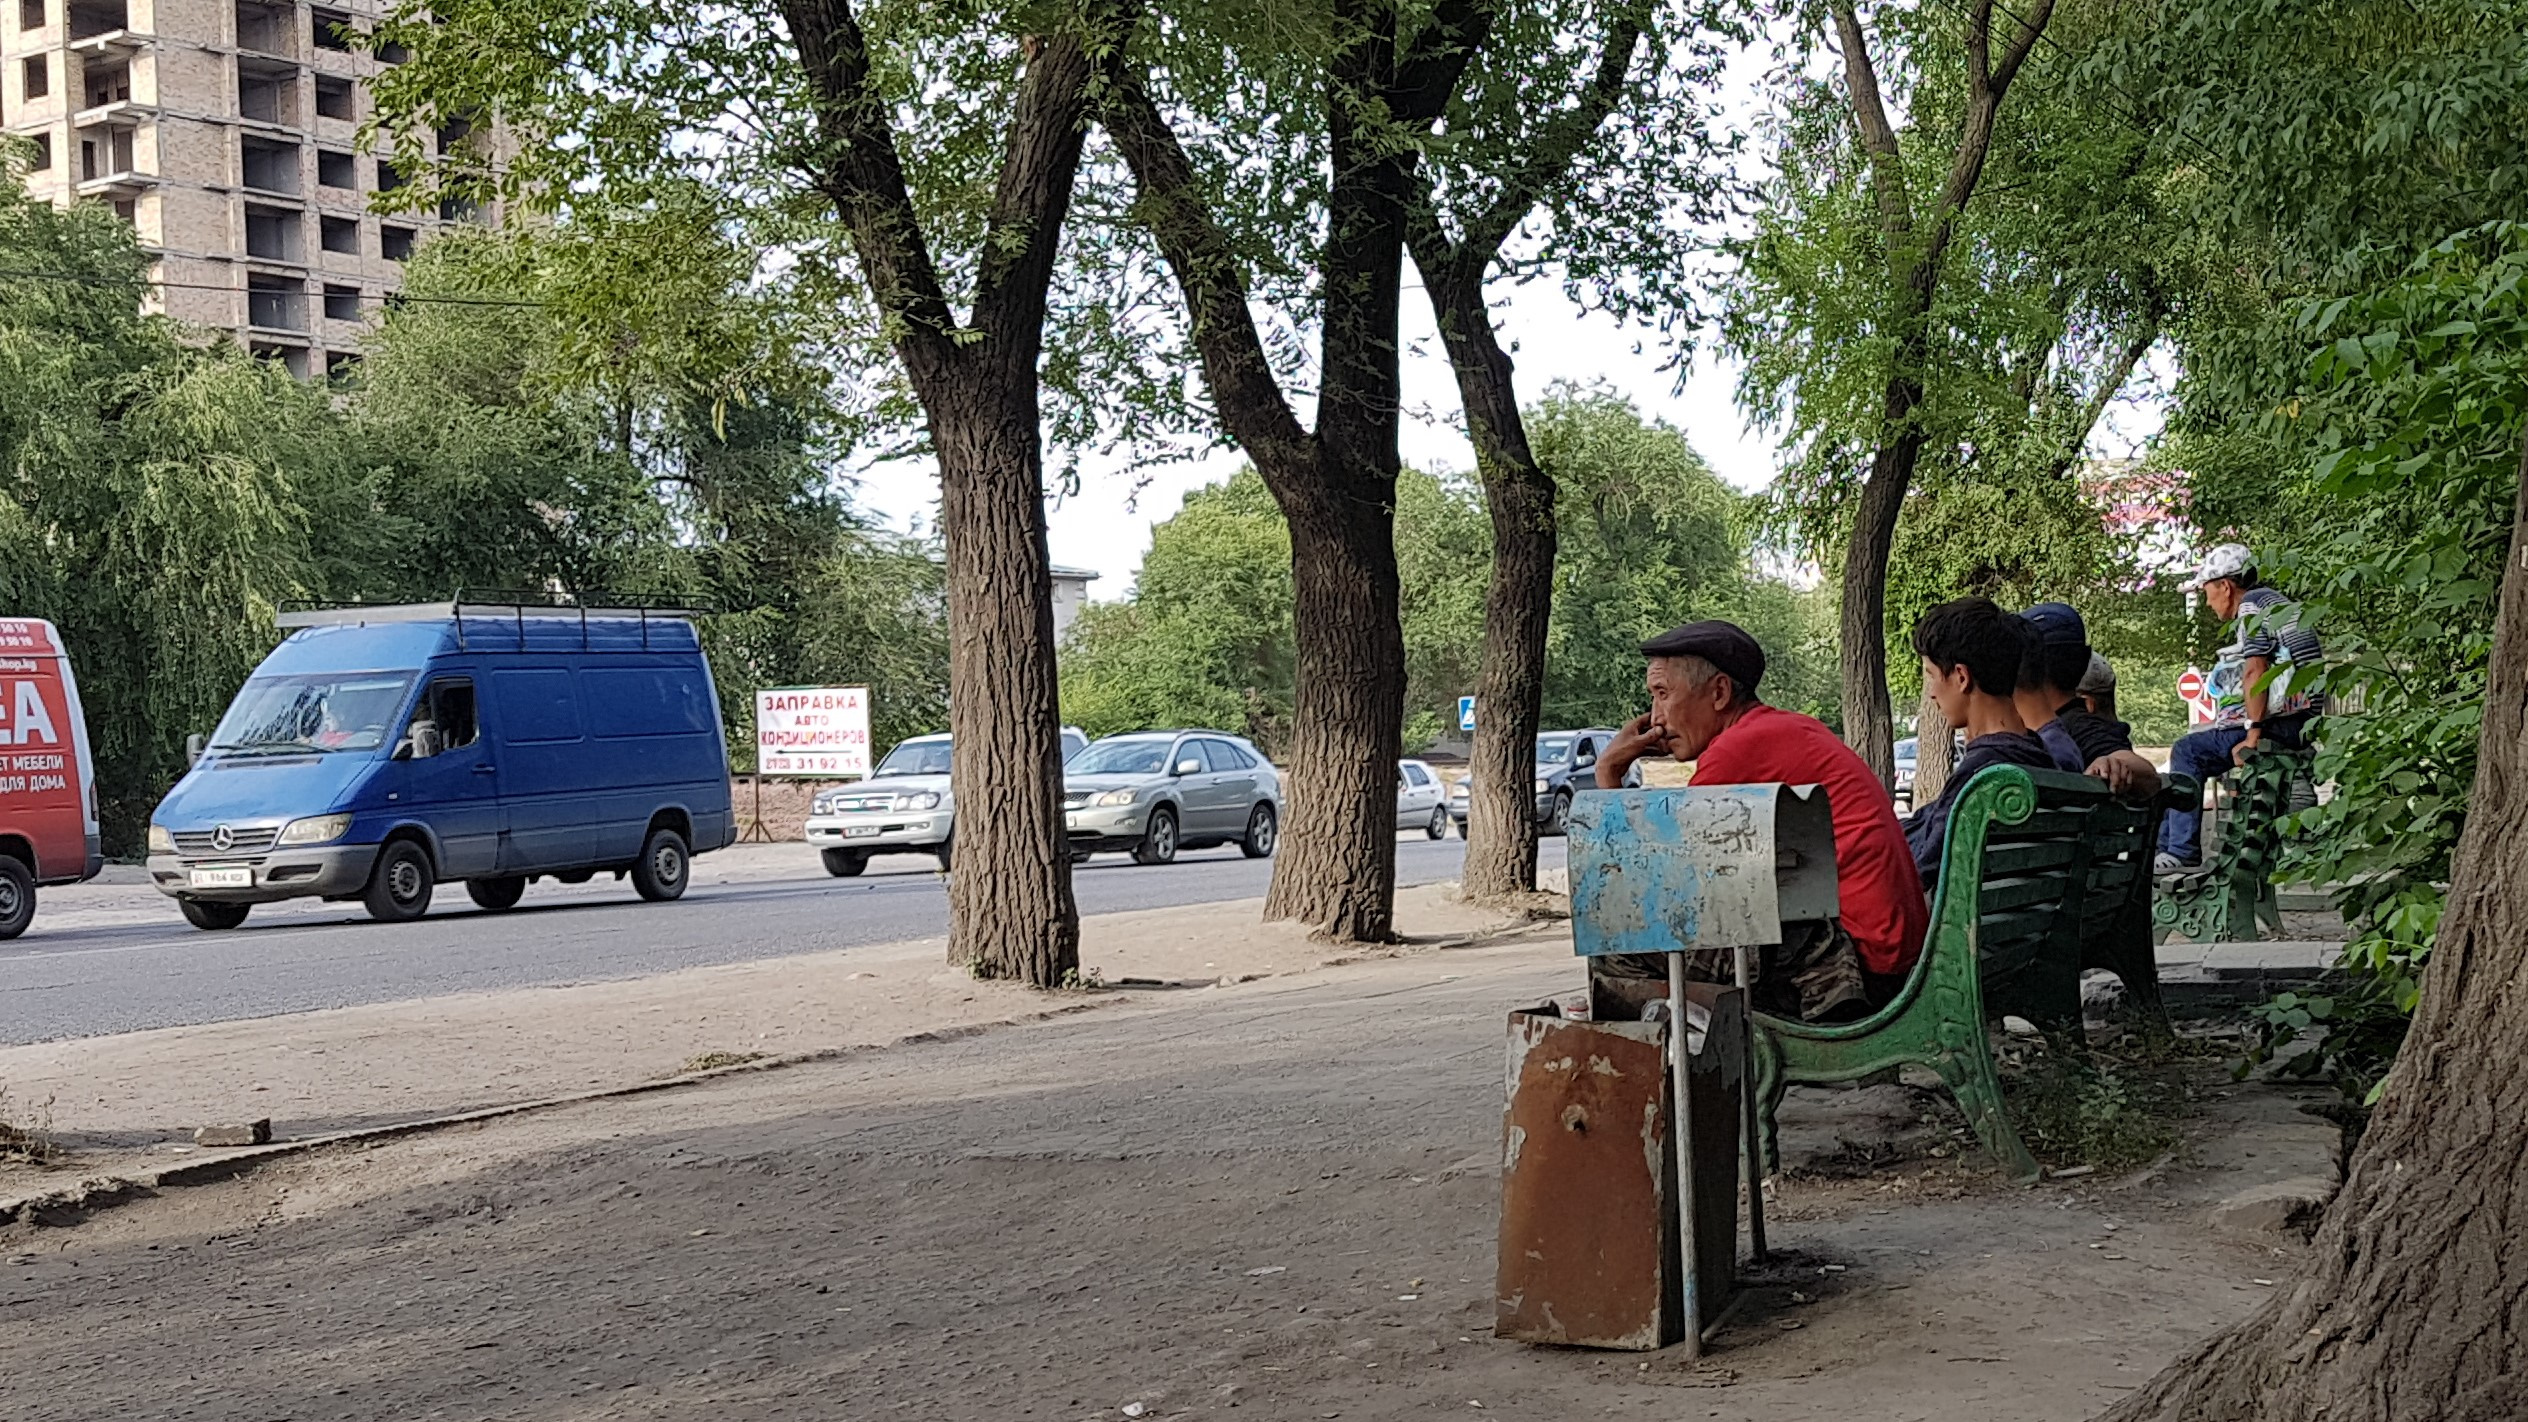 Central Asian migrants describe injustice, racism in Russia